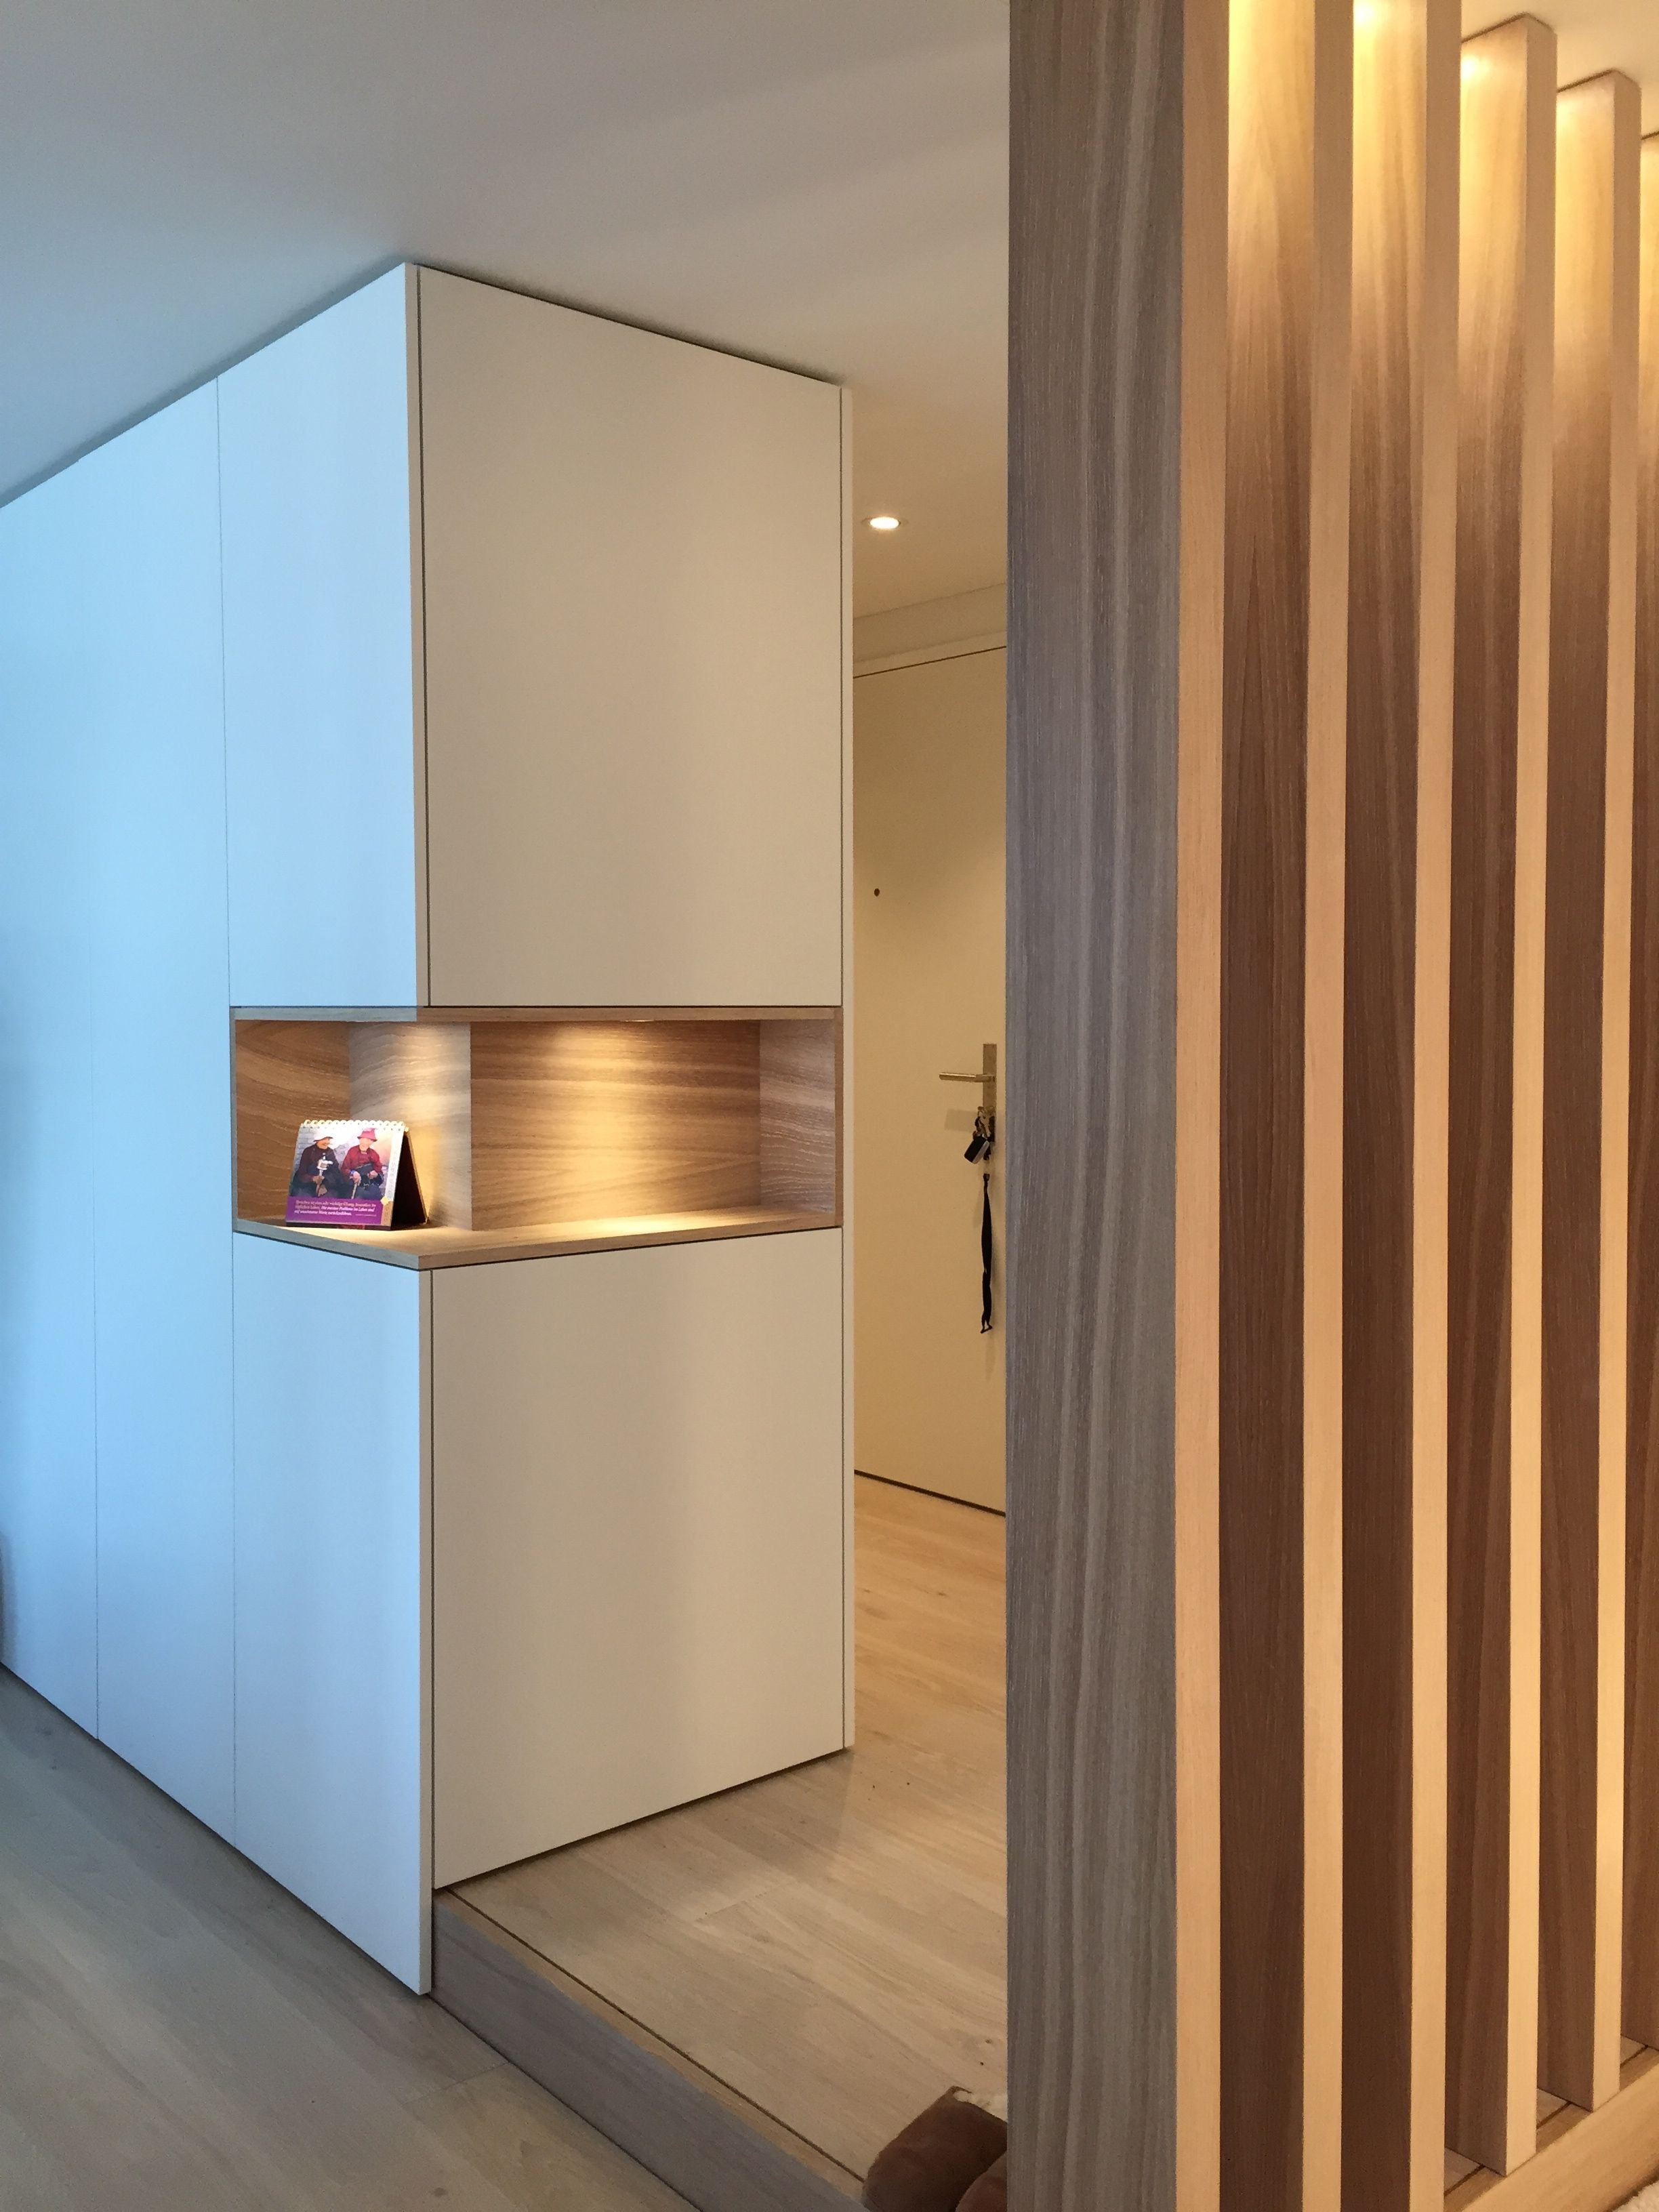 Home-office-innenarchitektur ideen innenarchitektur privat  建築  pinterest  interiors hall and